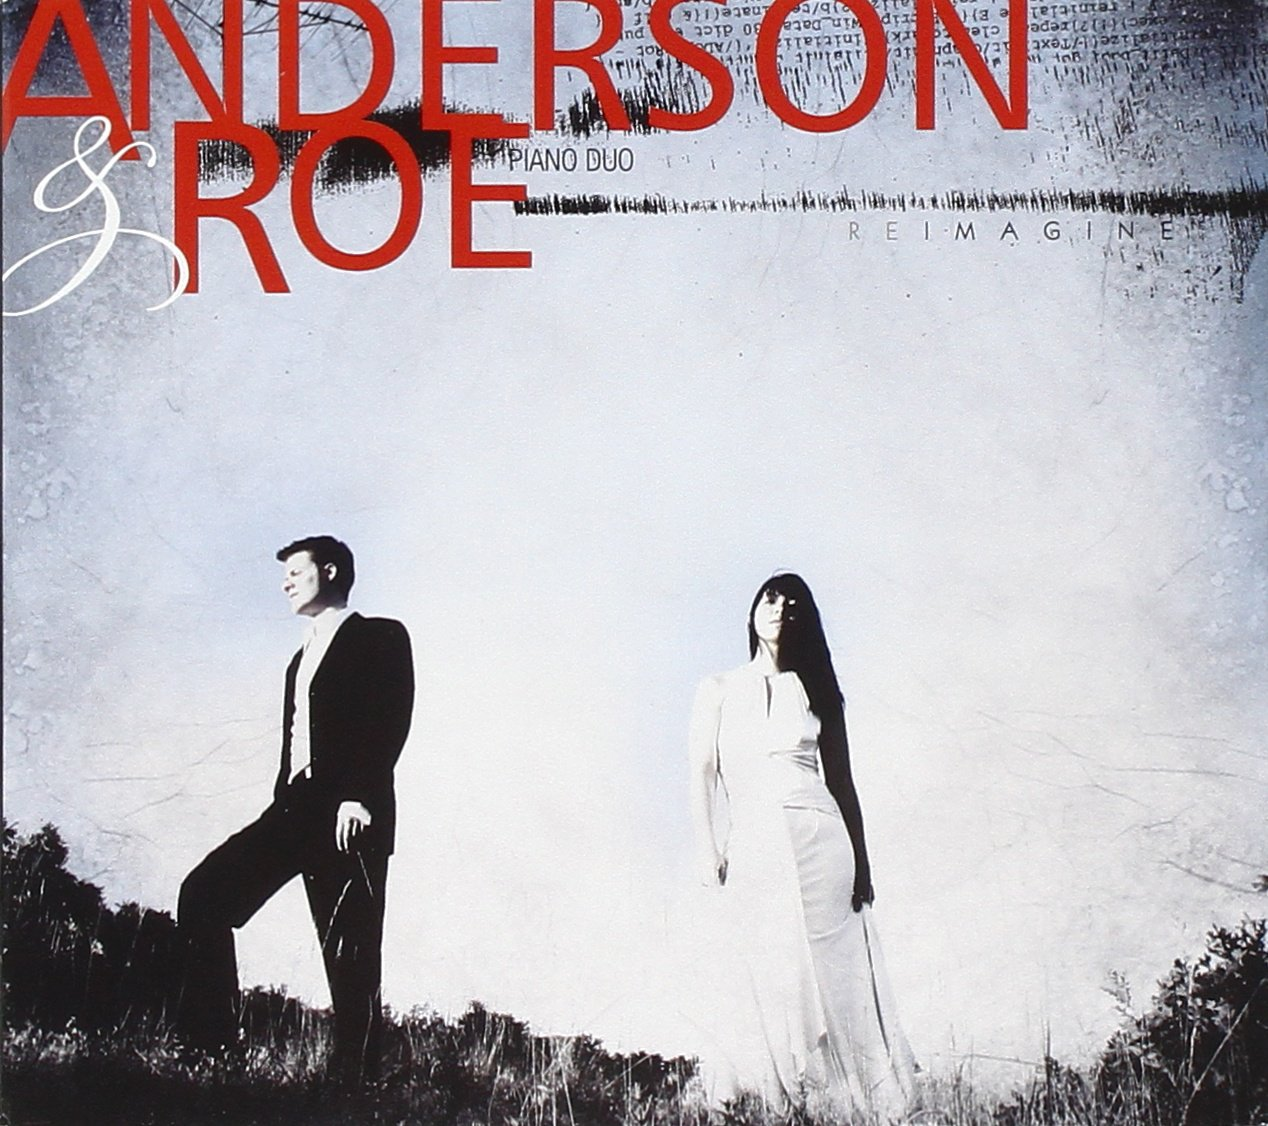 Reimagine by Anderson & Roe Piano Duo